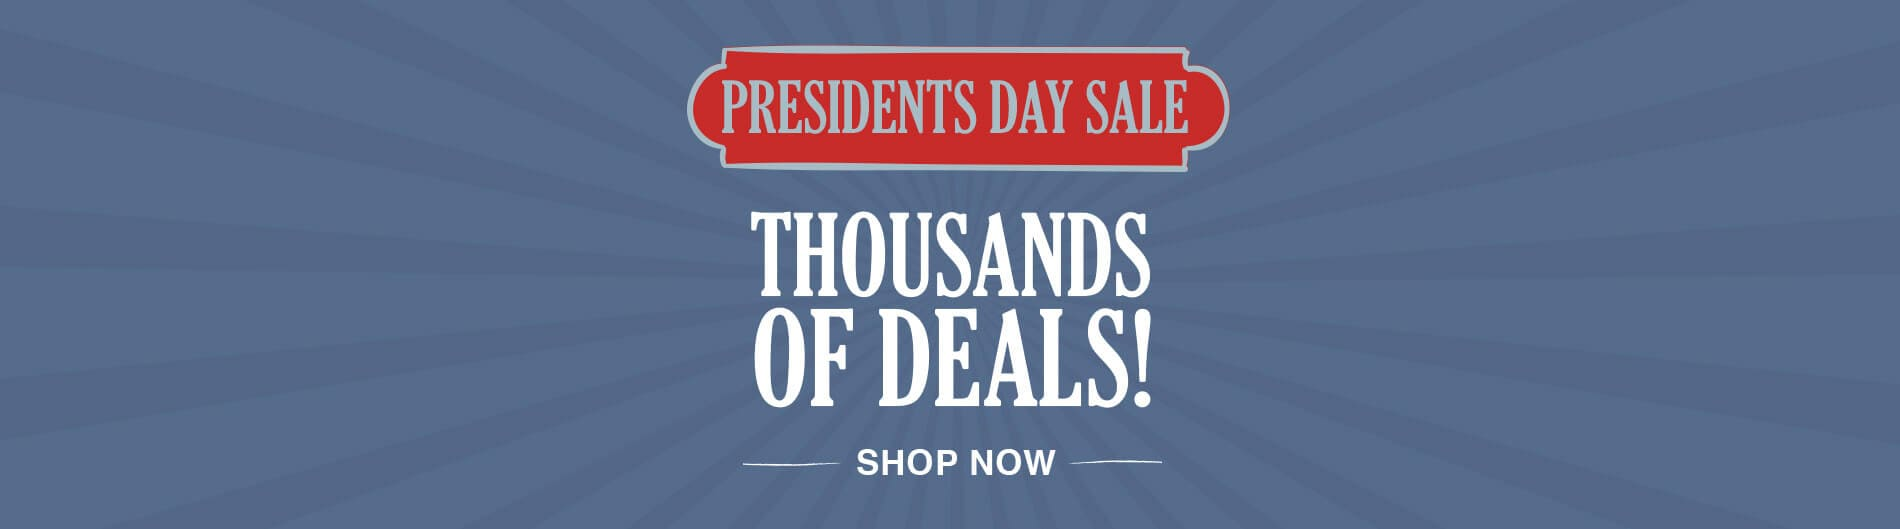 President's Day Sale - Thousands of Deals